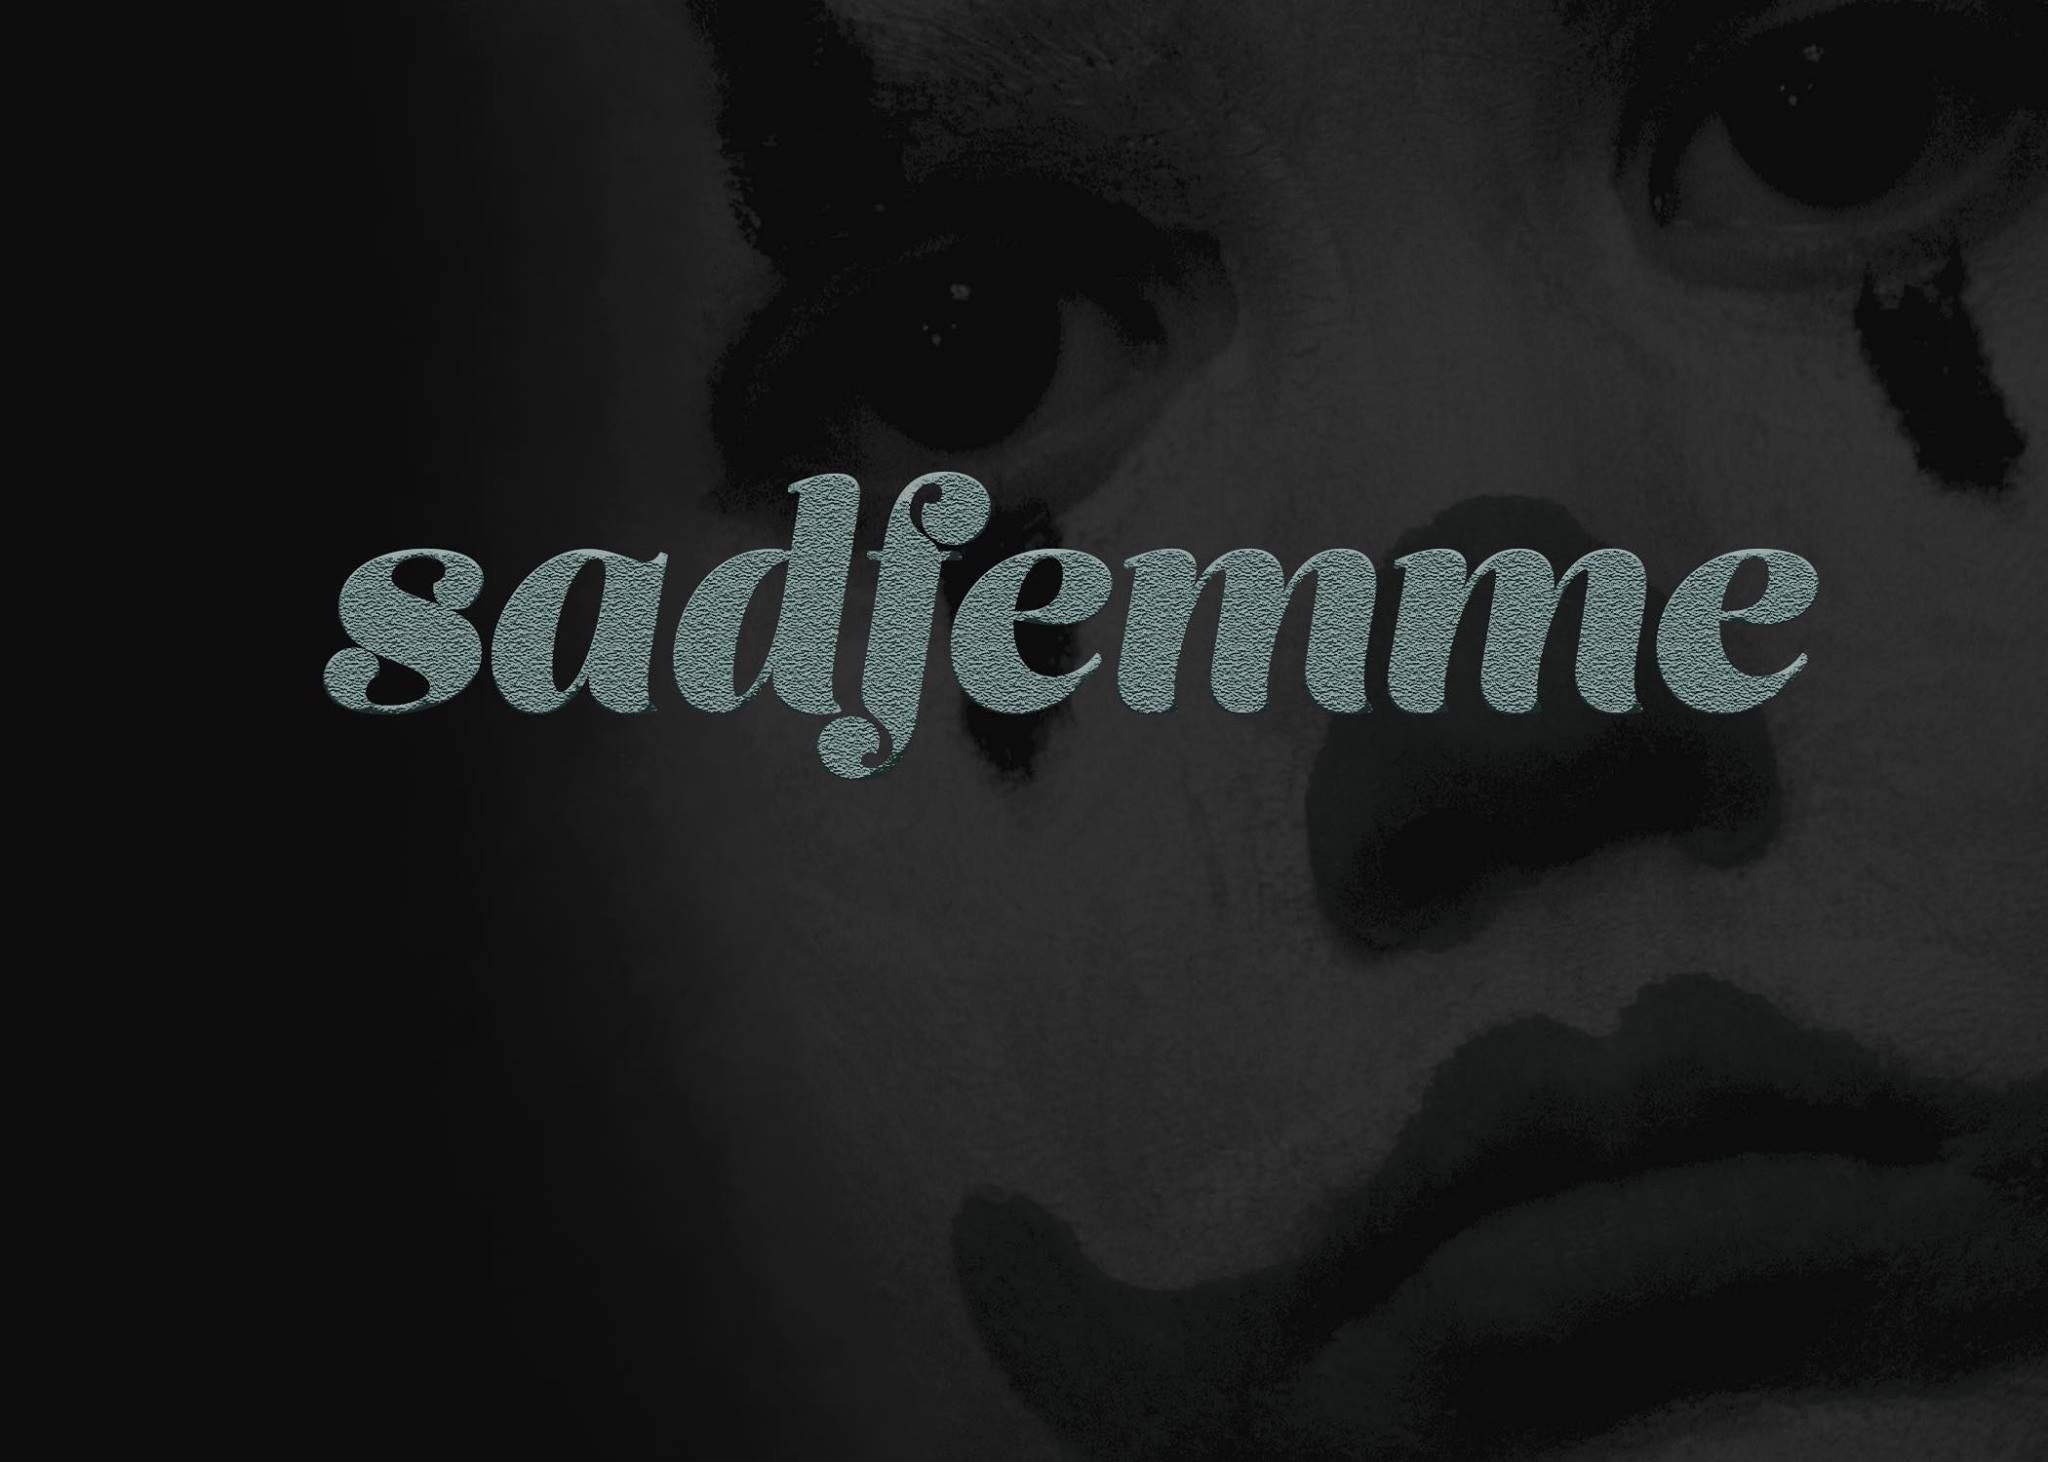 sadfemme (web series) — producer - sadfemme is a comedy web series that centers around Madison, a femme genderqueer person, and his self-destructive misadventures as he attempts to gain control of his life after ending a relationship with the man he believes to be his soulmate. It's a dark comedy that explores millennial life in New York City through the eyes of someone who feels like he's consistently being kicked when he's down, and whose bad luck and bad decisions spiral to such low places that you can't help but laugh.